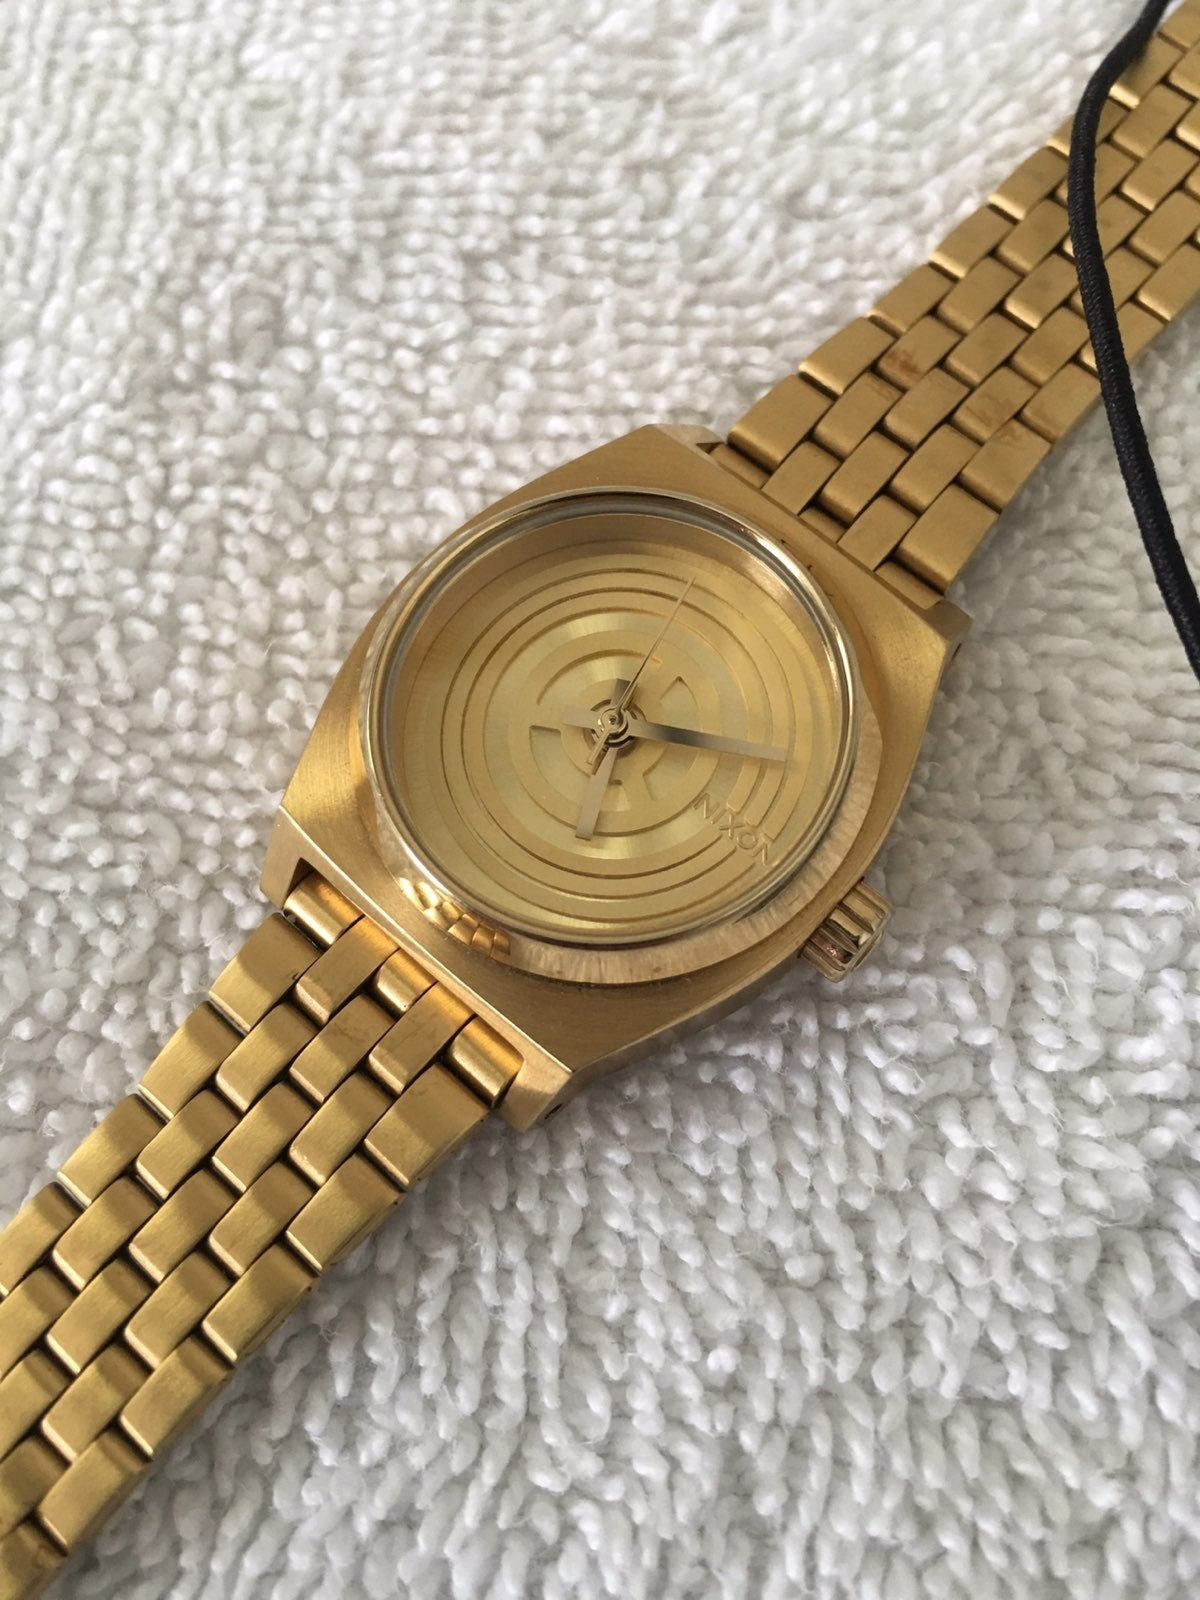 Star Wars Nixon C3PO Gold Watch Small